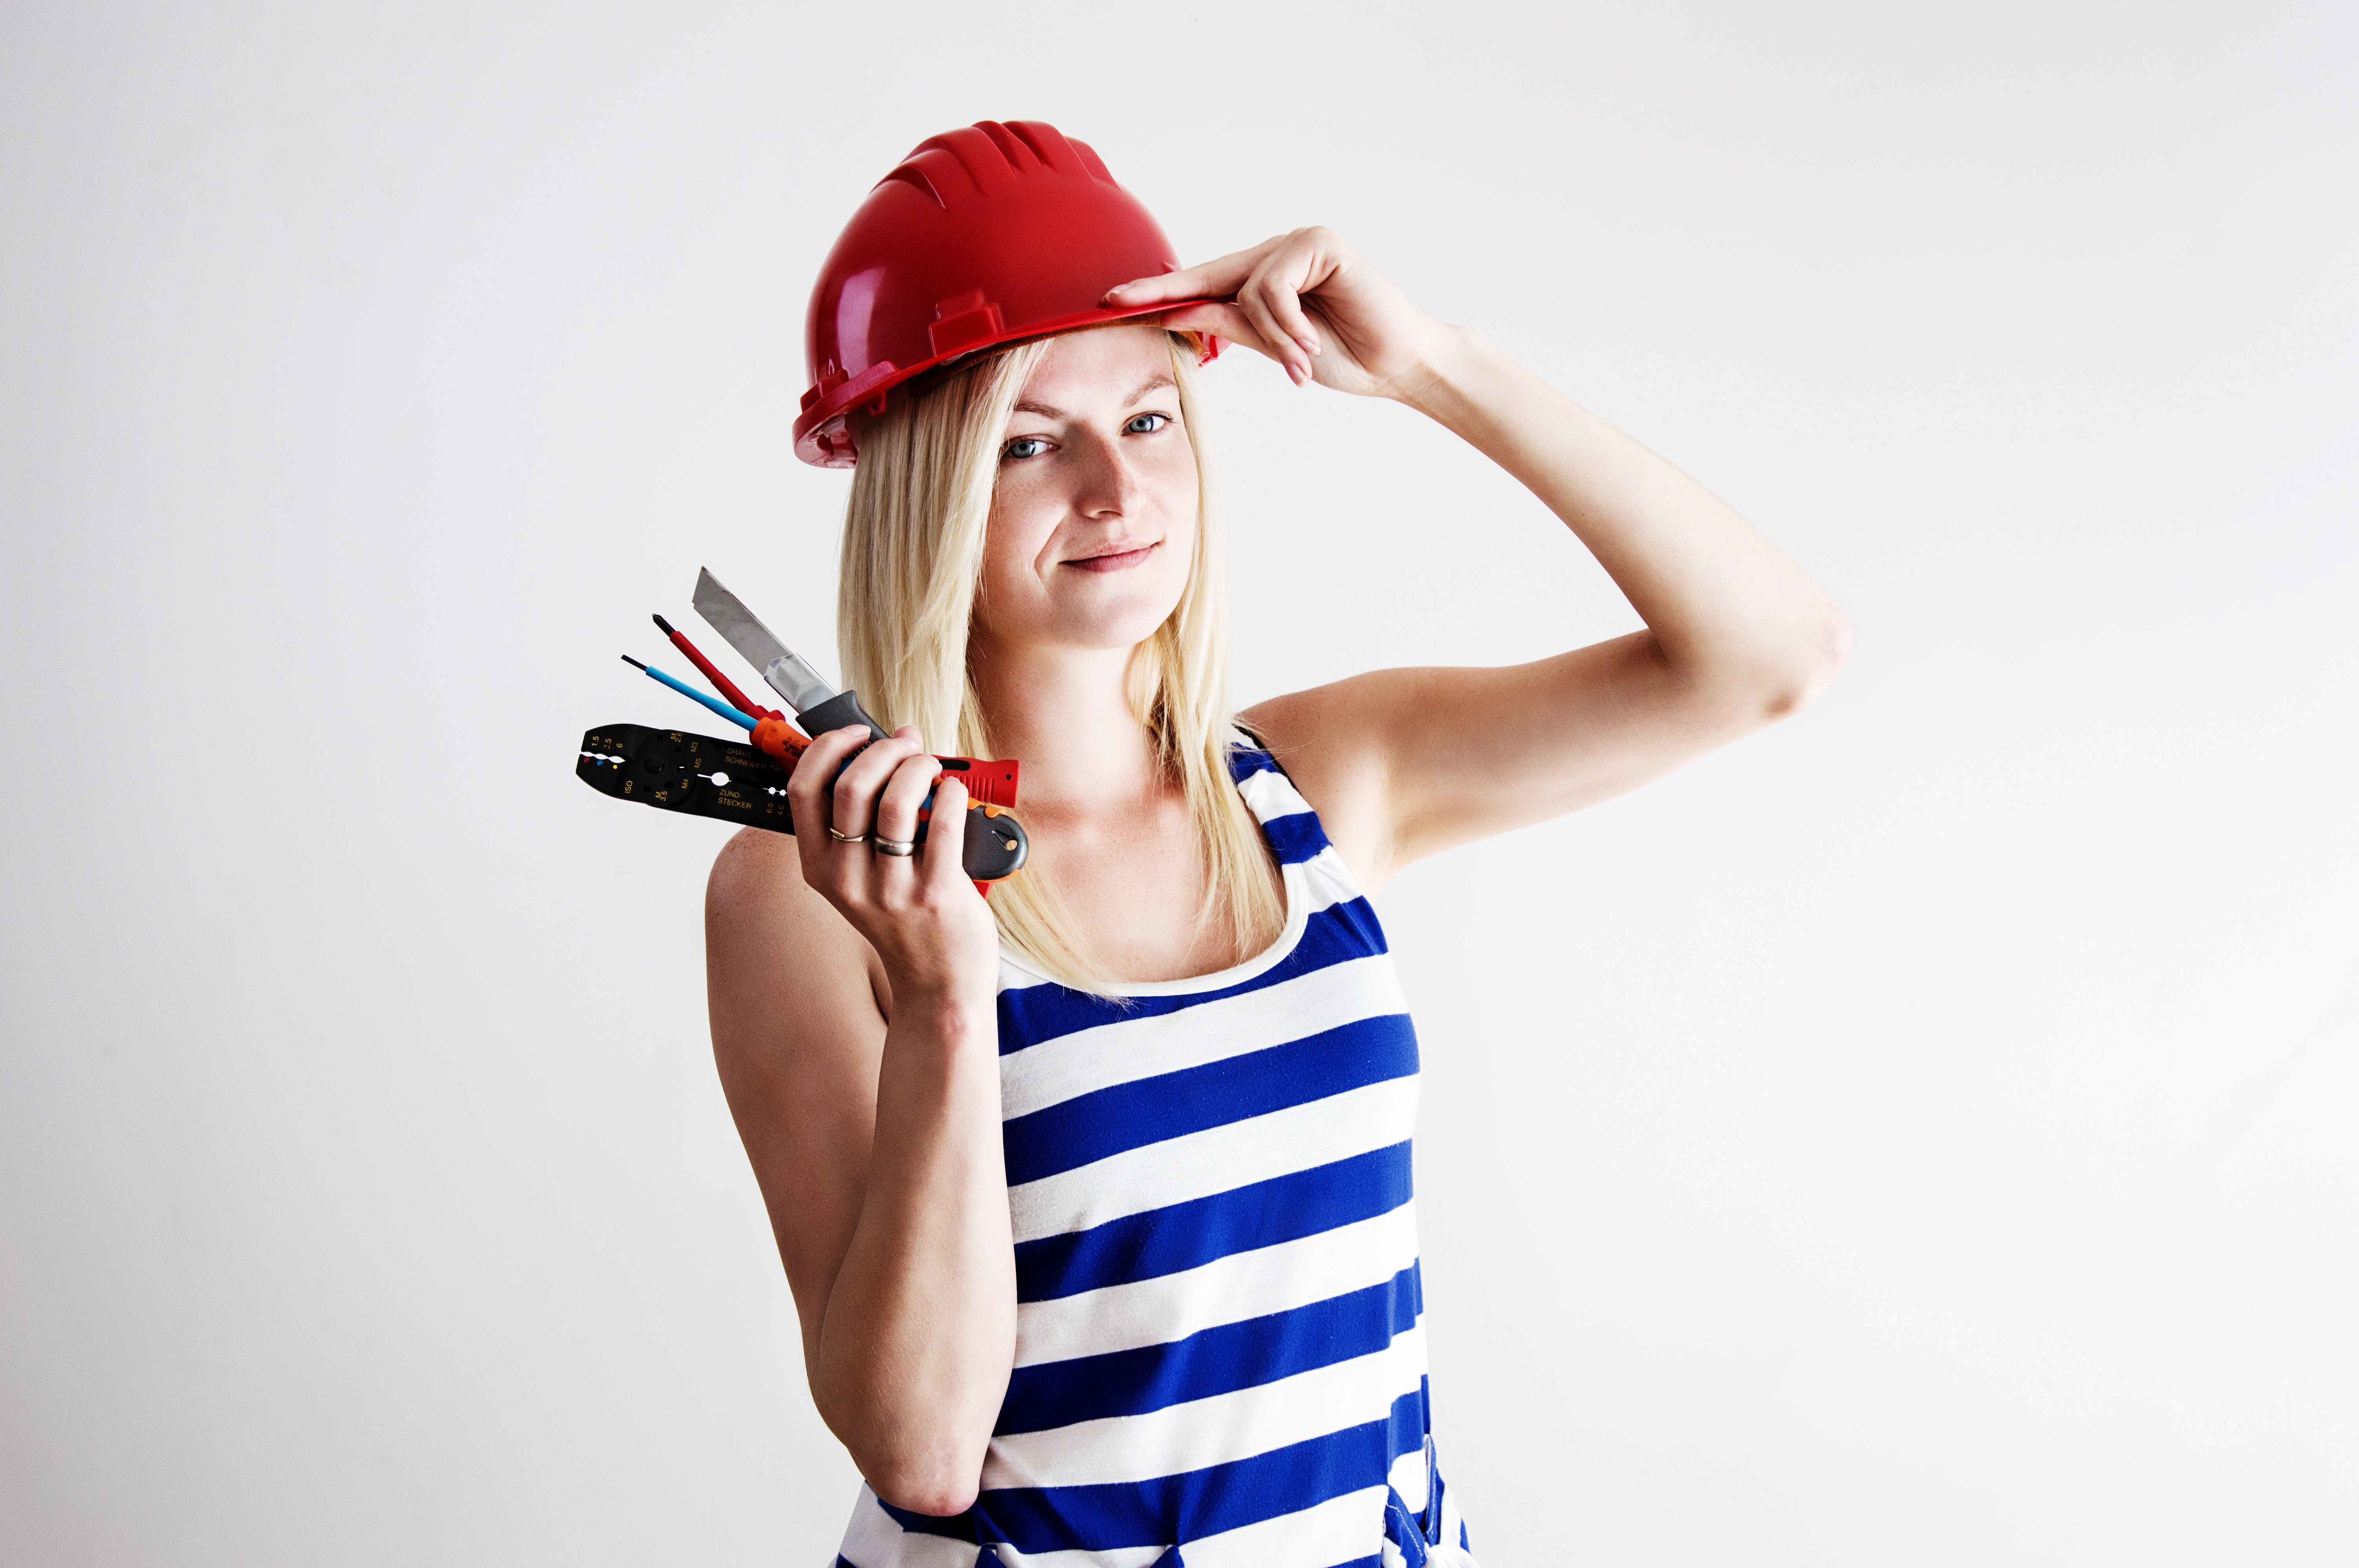 Woman in Blue and White Tank Top Wearing Red Hard Hat, Adult, Model, Woman, Tools, HQ Photo